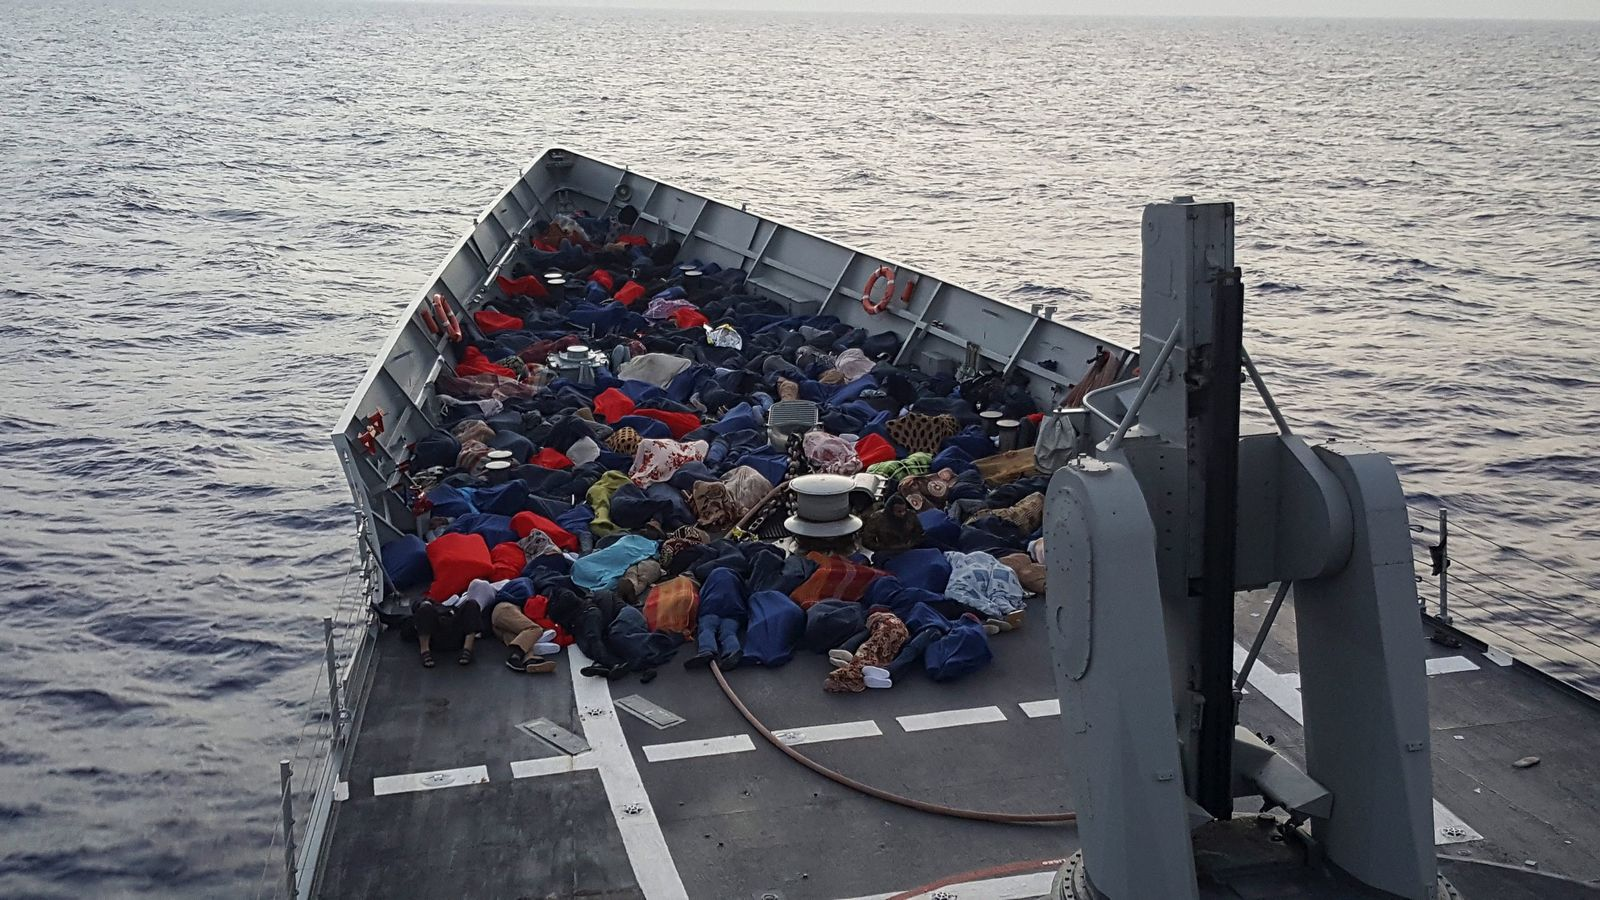 Spanish Army rescues migrants at sea